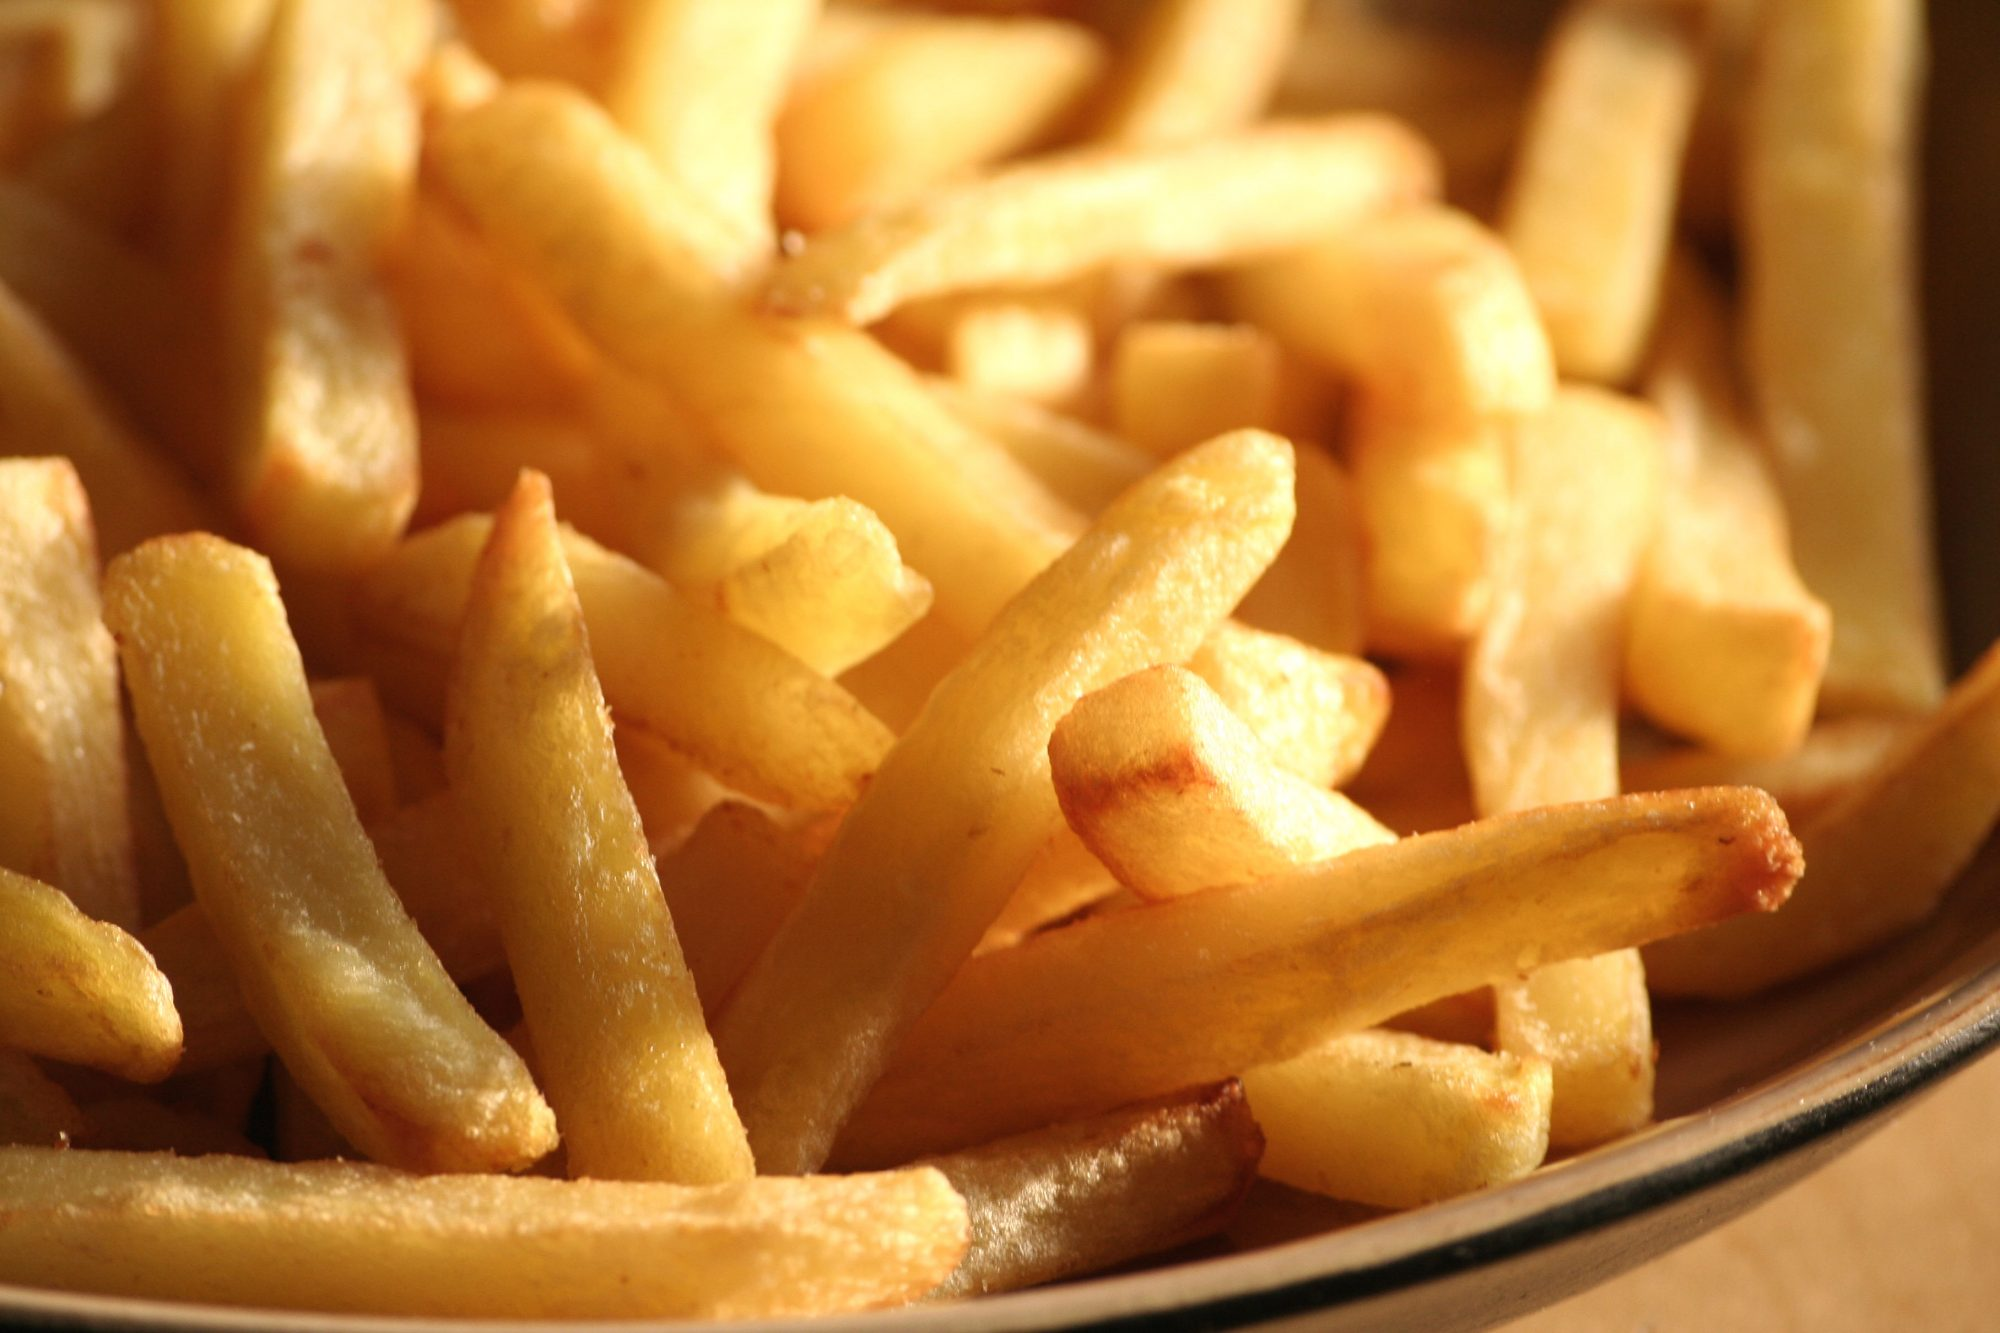 Starchy food